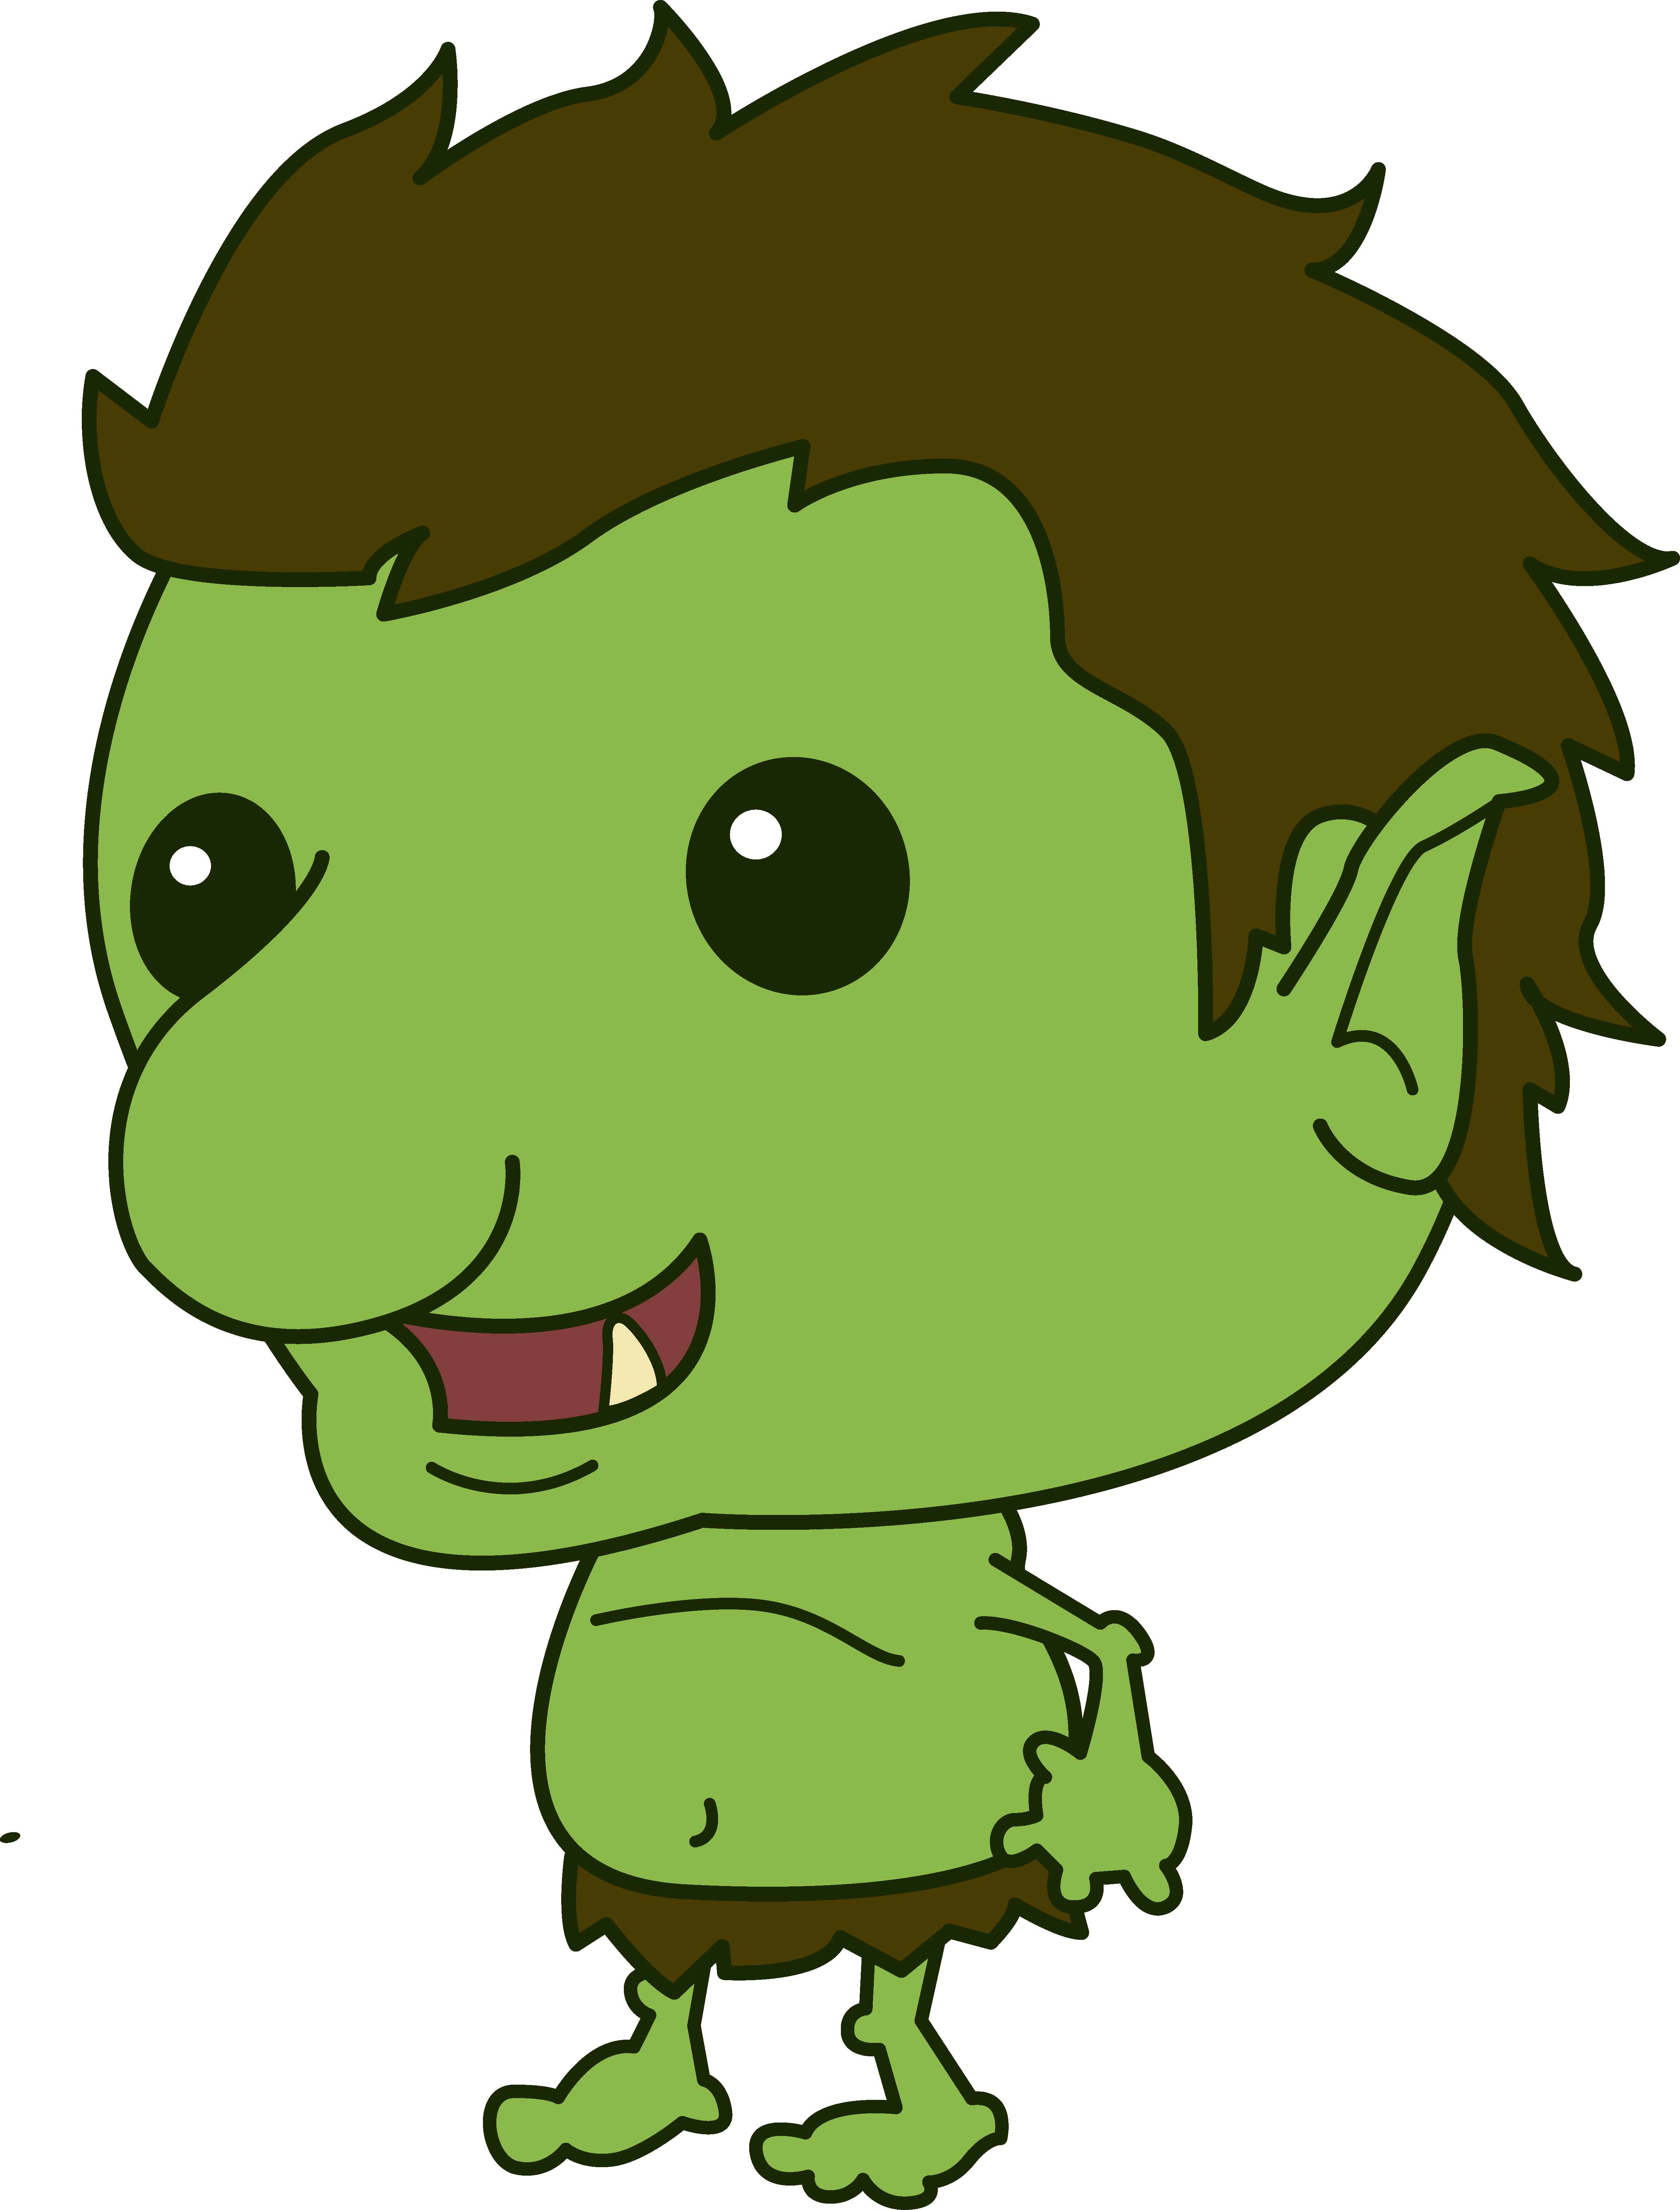 Troll clipart #2, Download drawings